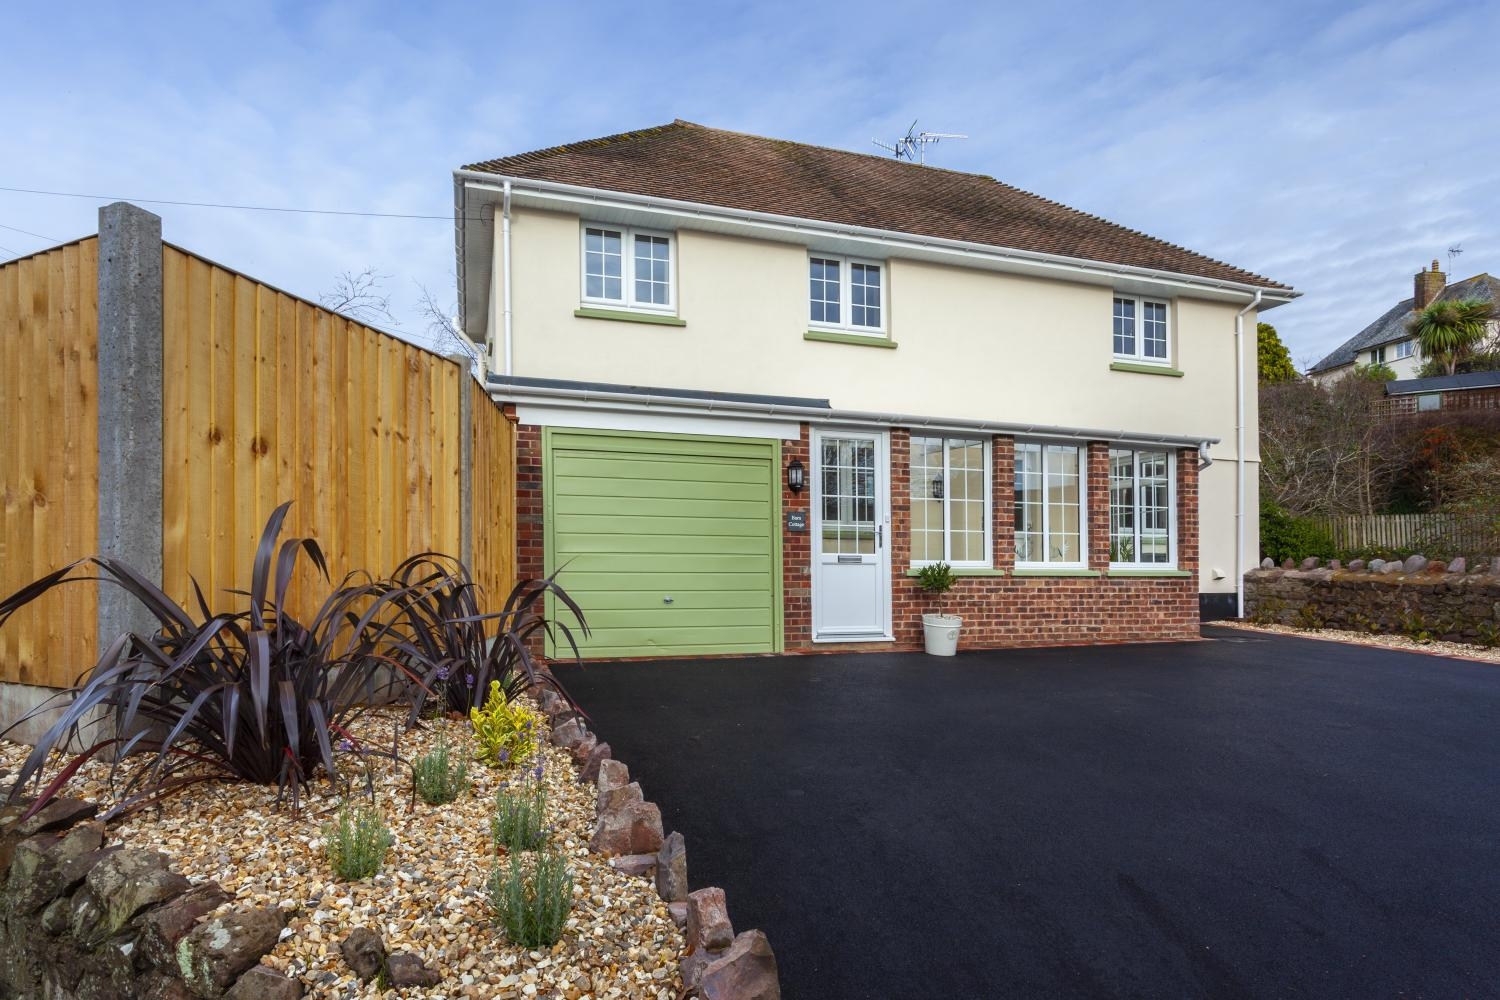 Barn Cottage with ample parking on the drive